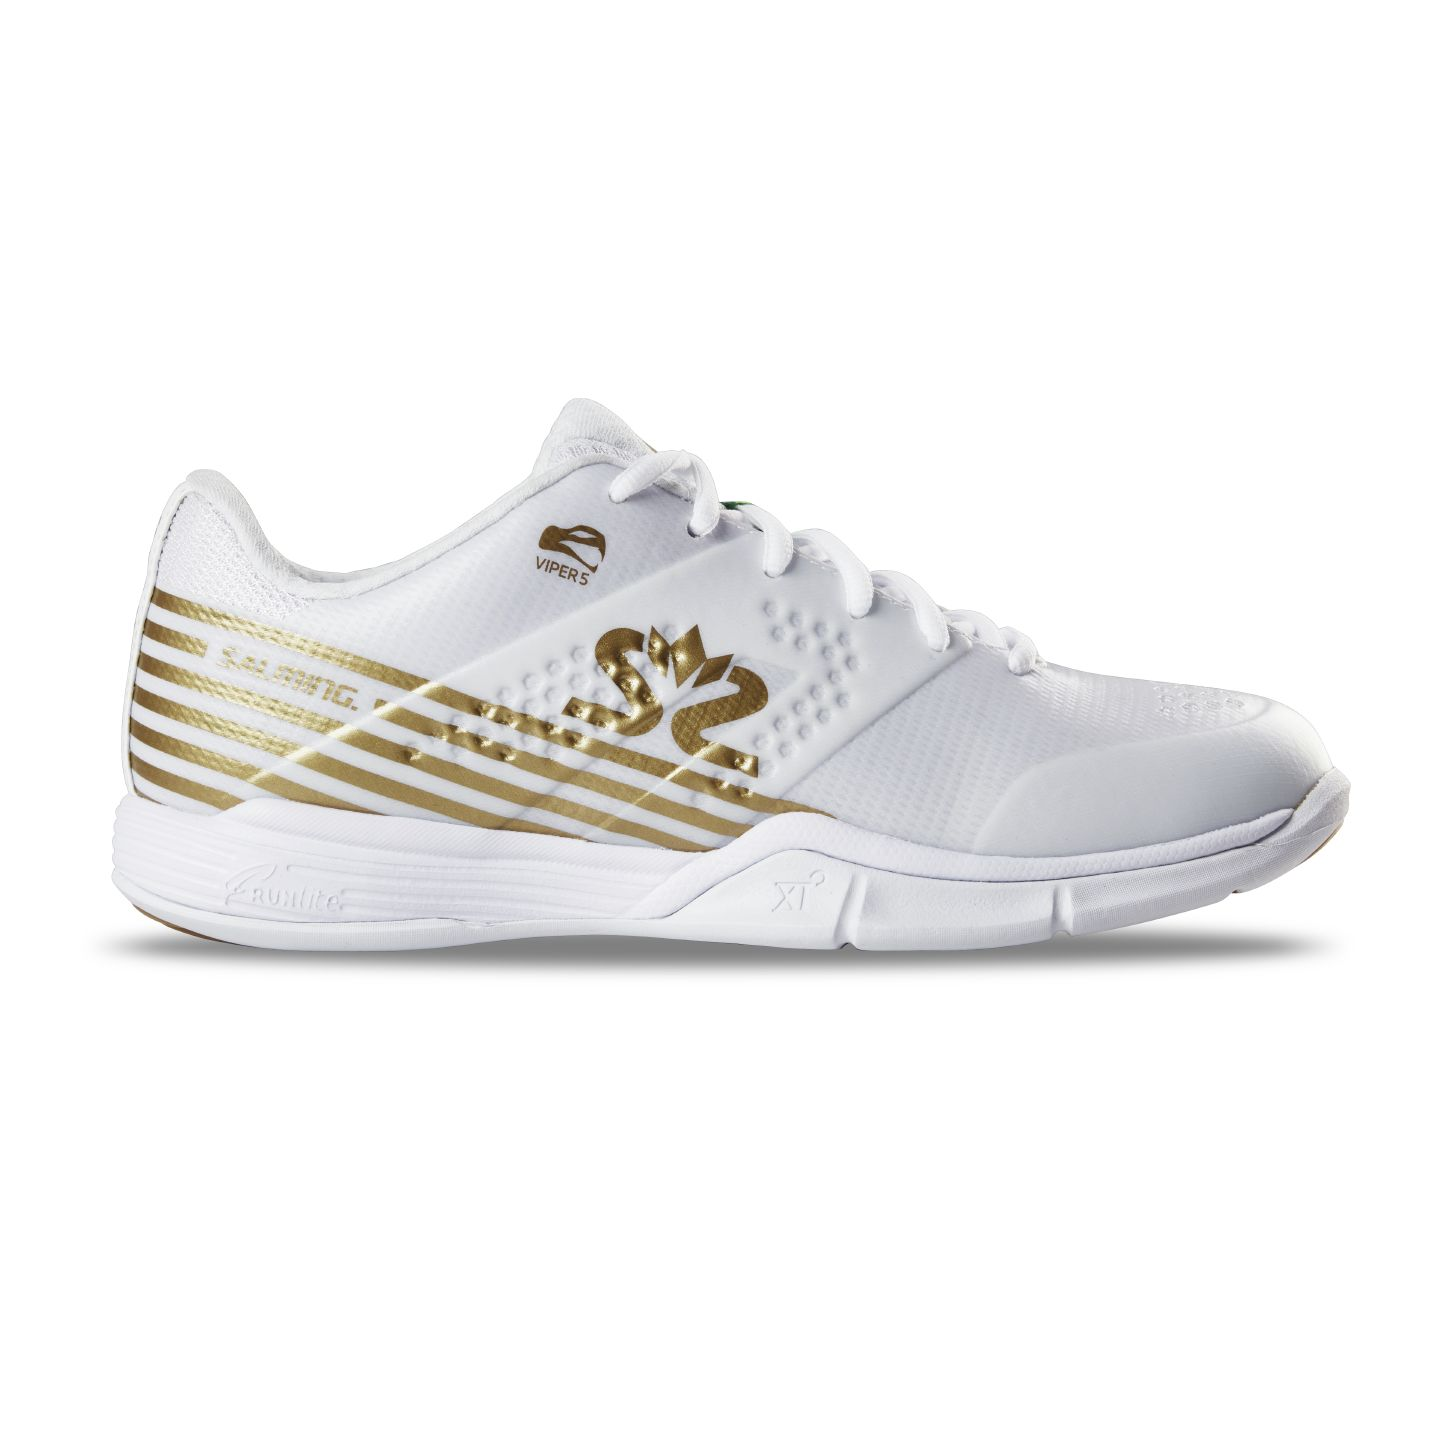 Salming Viper 5 Shoe Women White/Gold 4 UK - 36 2/3 EUR - 23 cm